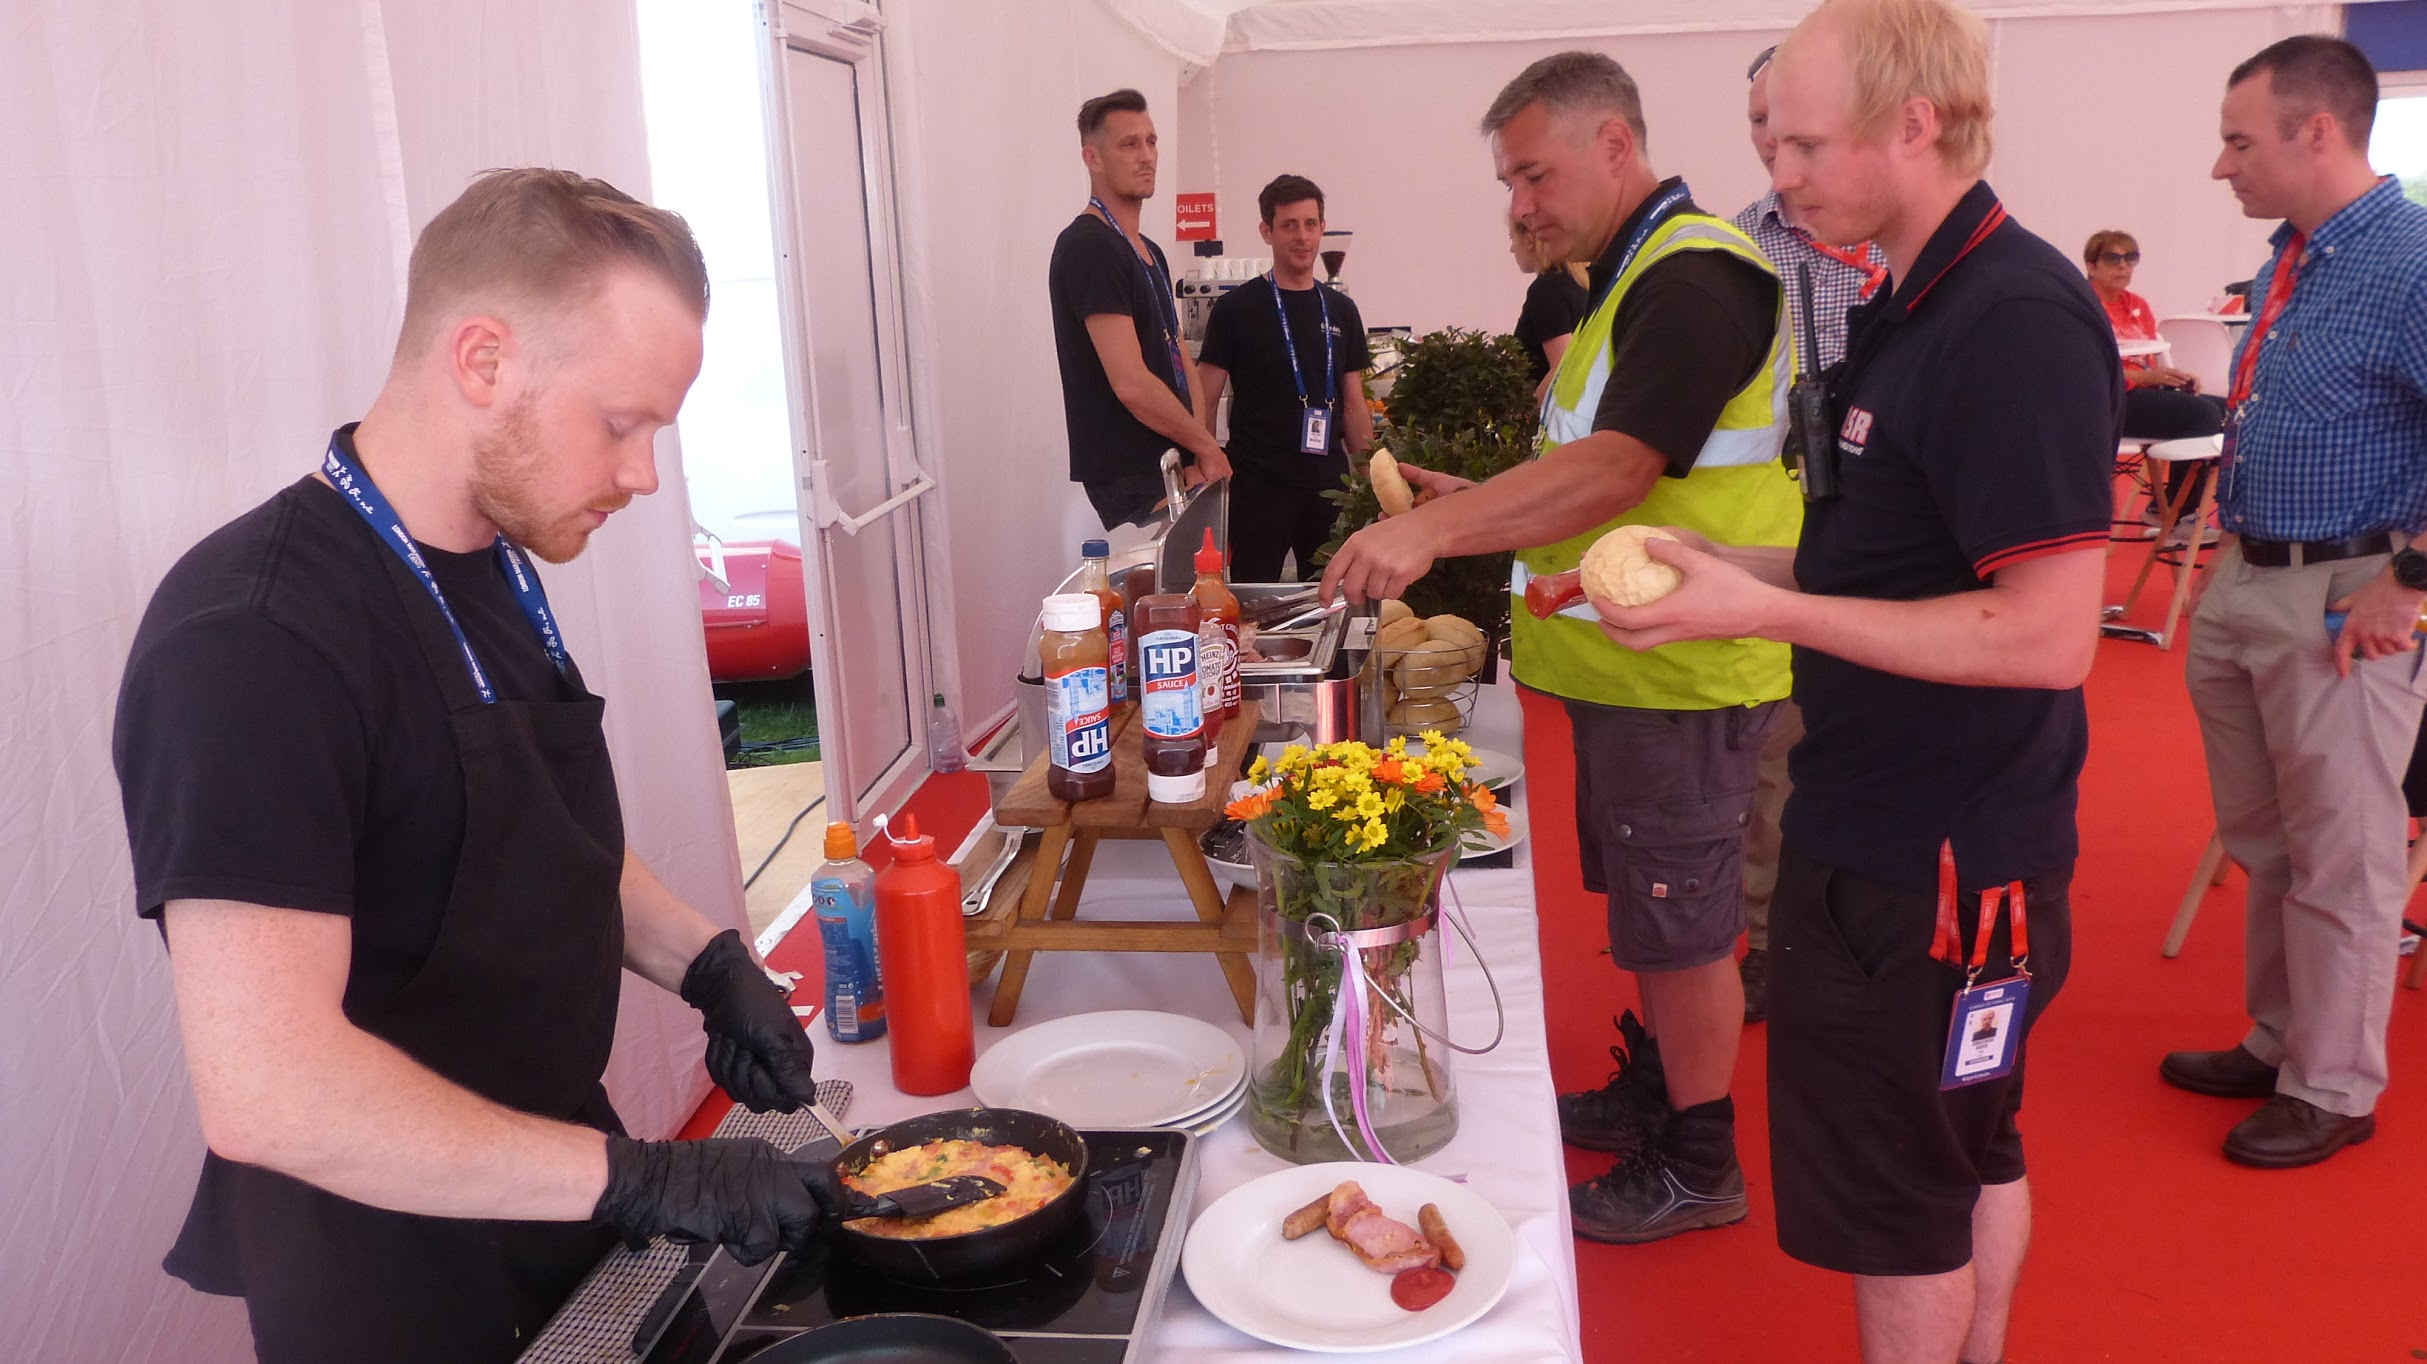 Fayre Do's chef cooking omelette